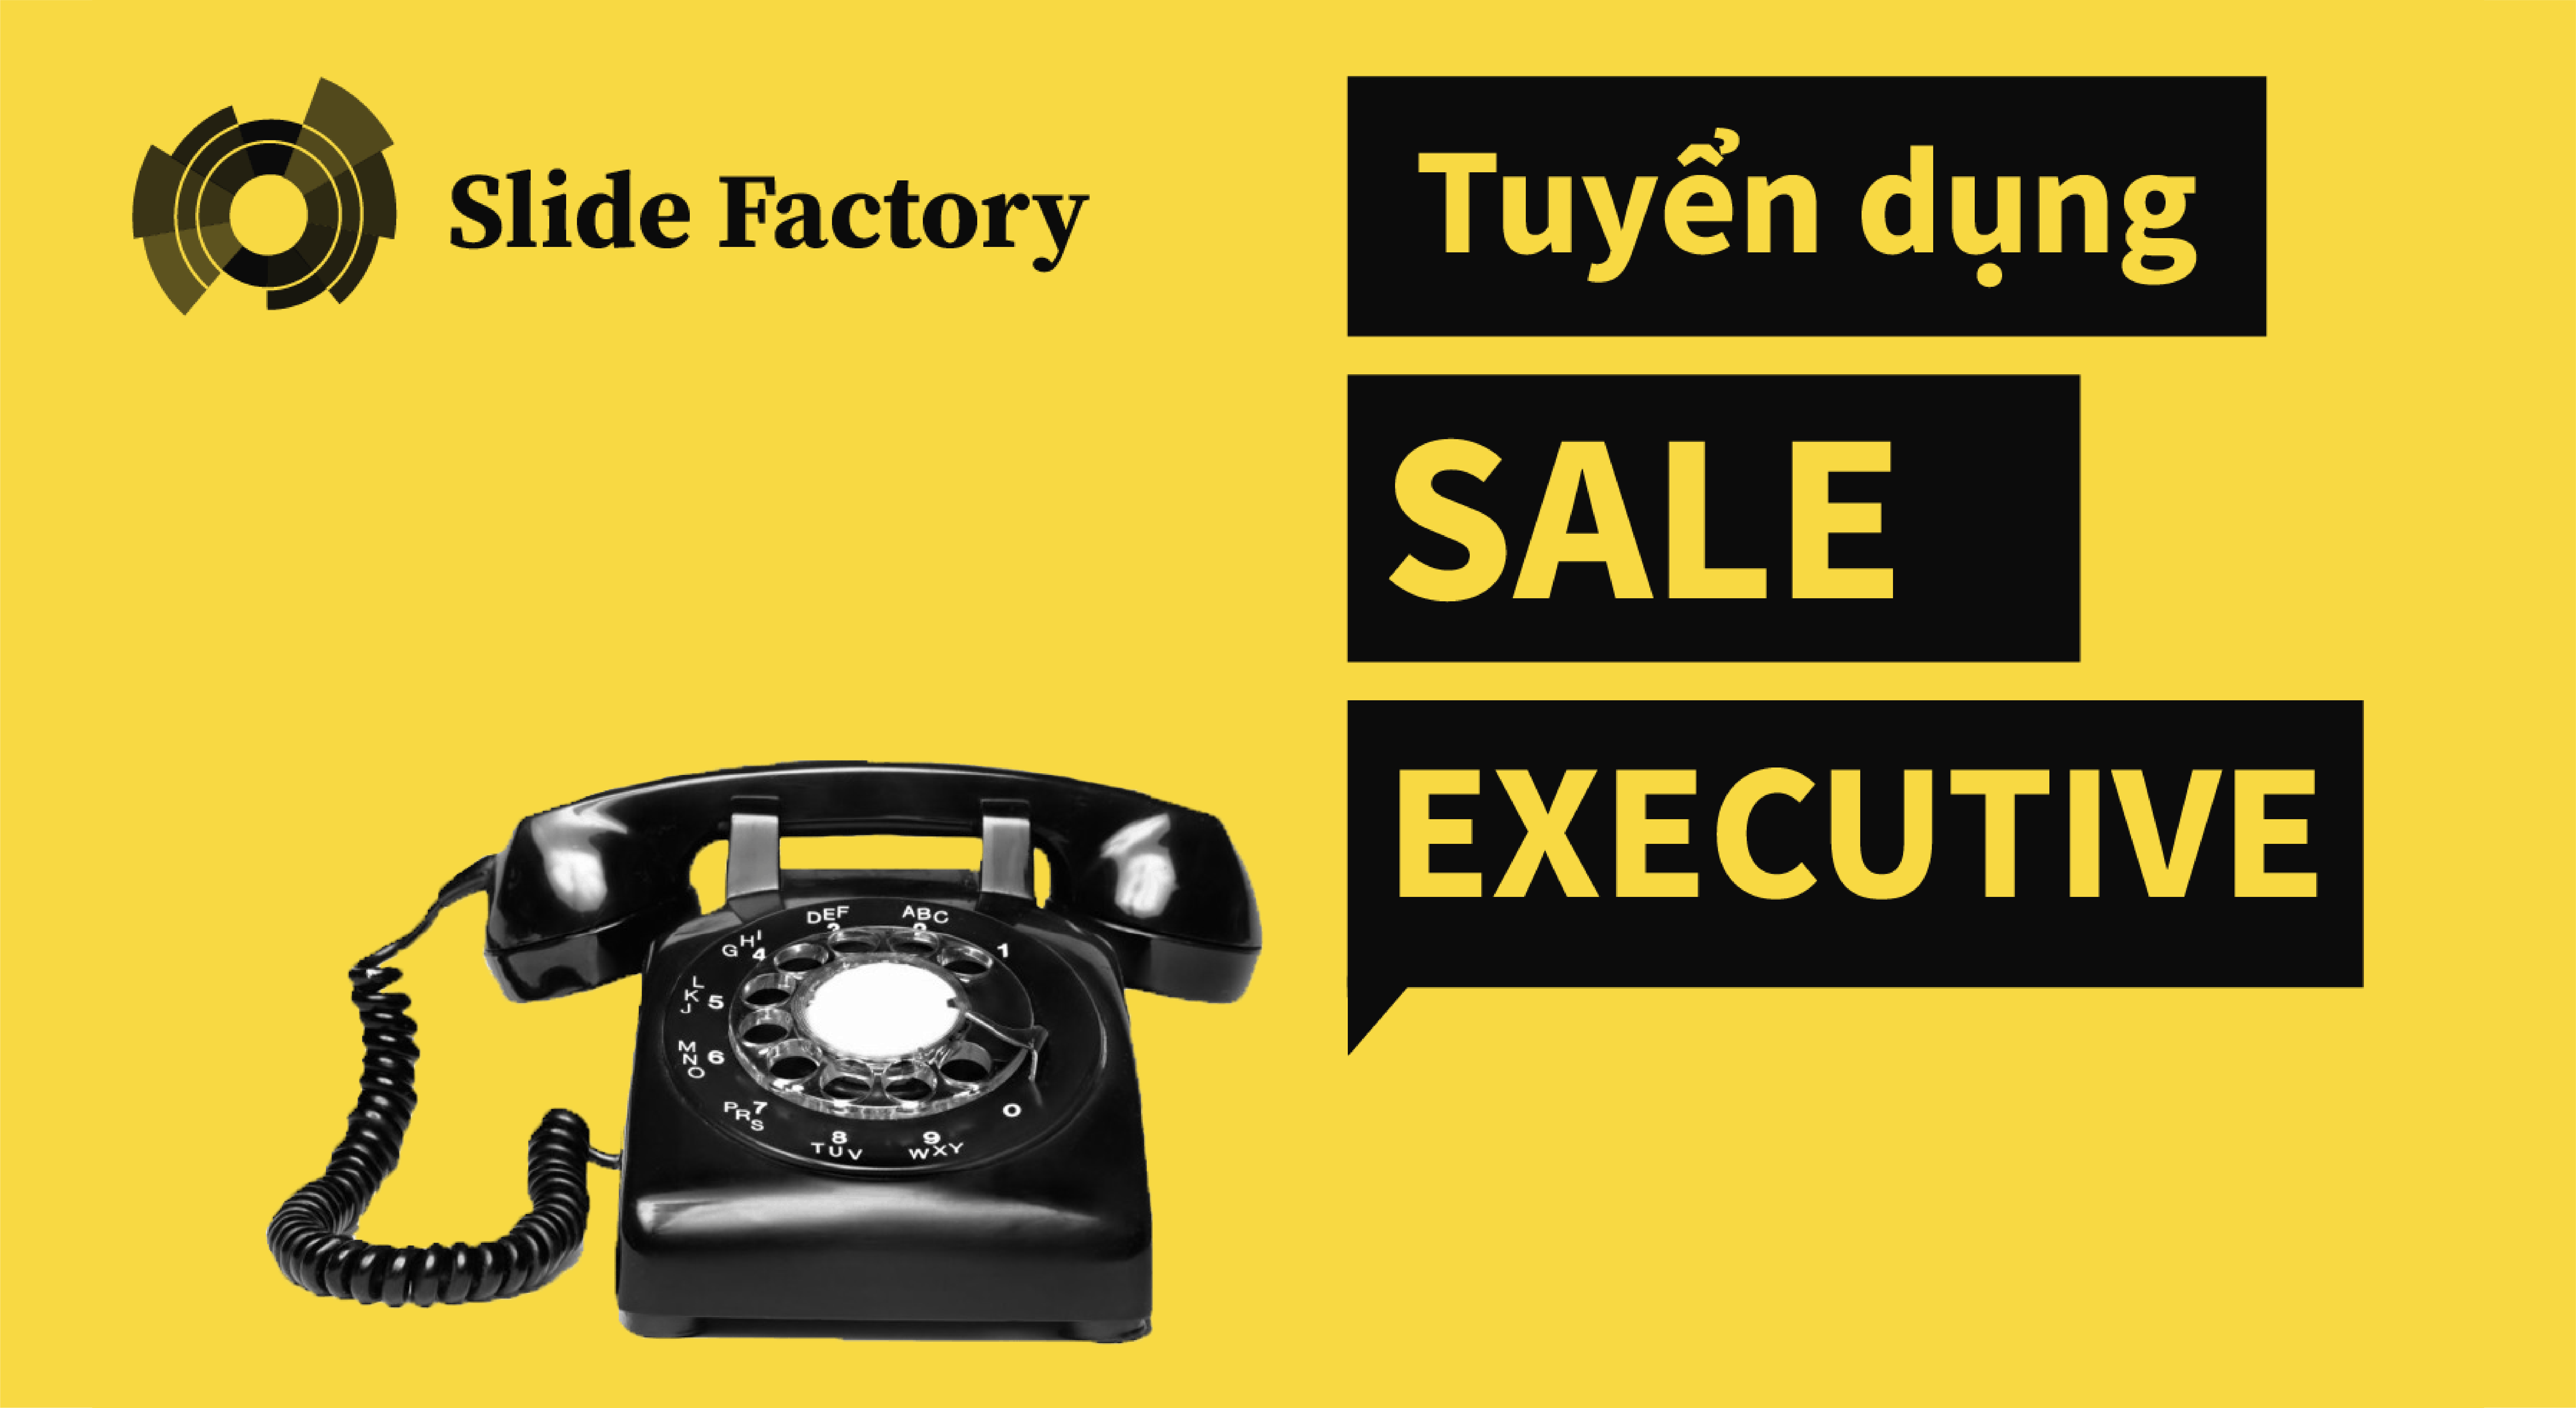 SLIDE FACTORY tuyển dụng Sale Executive